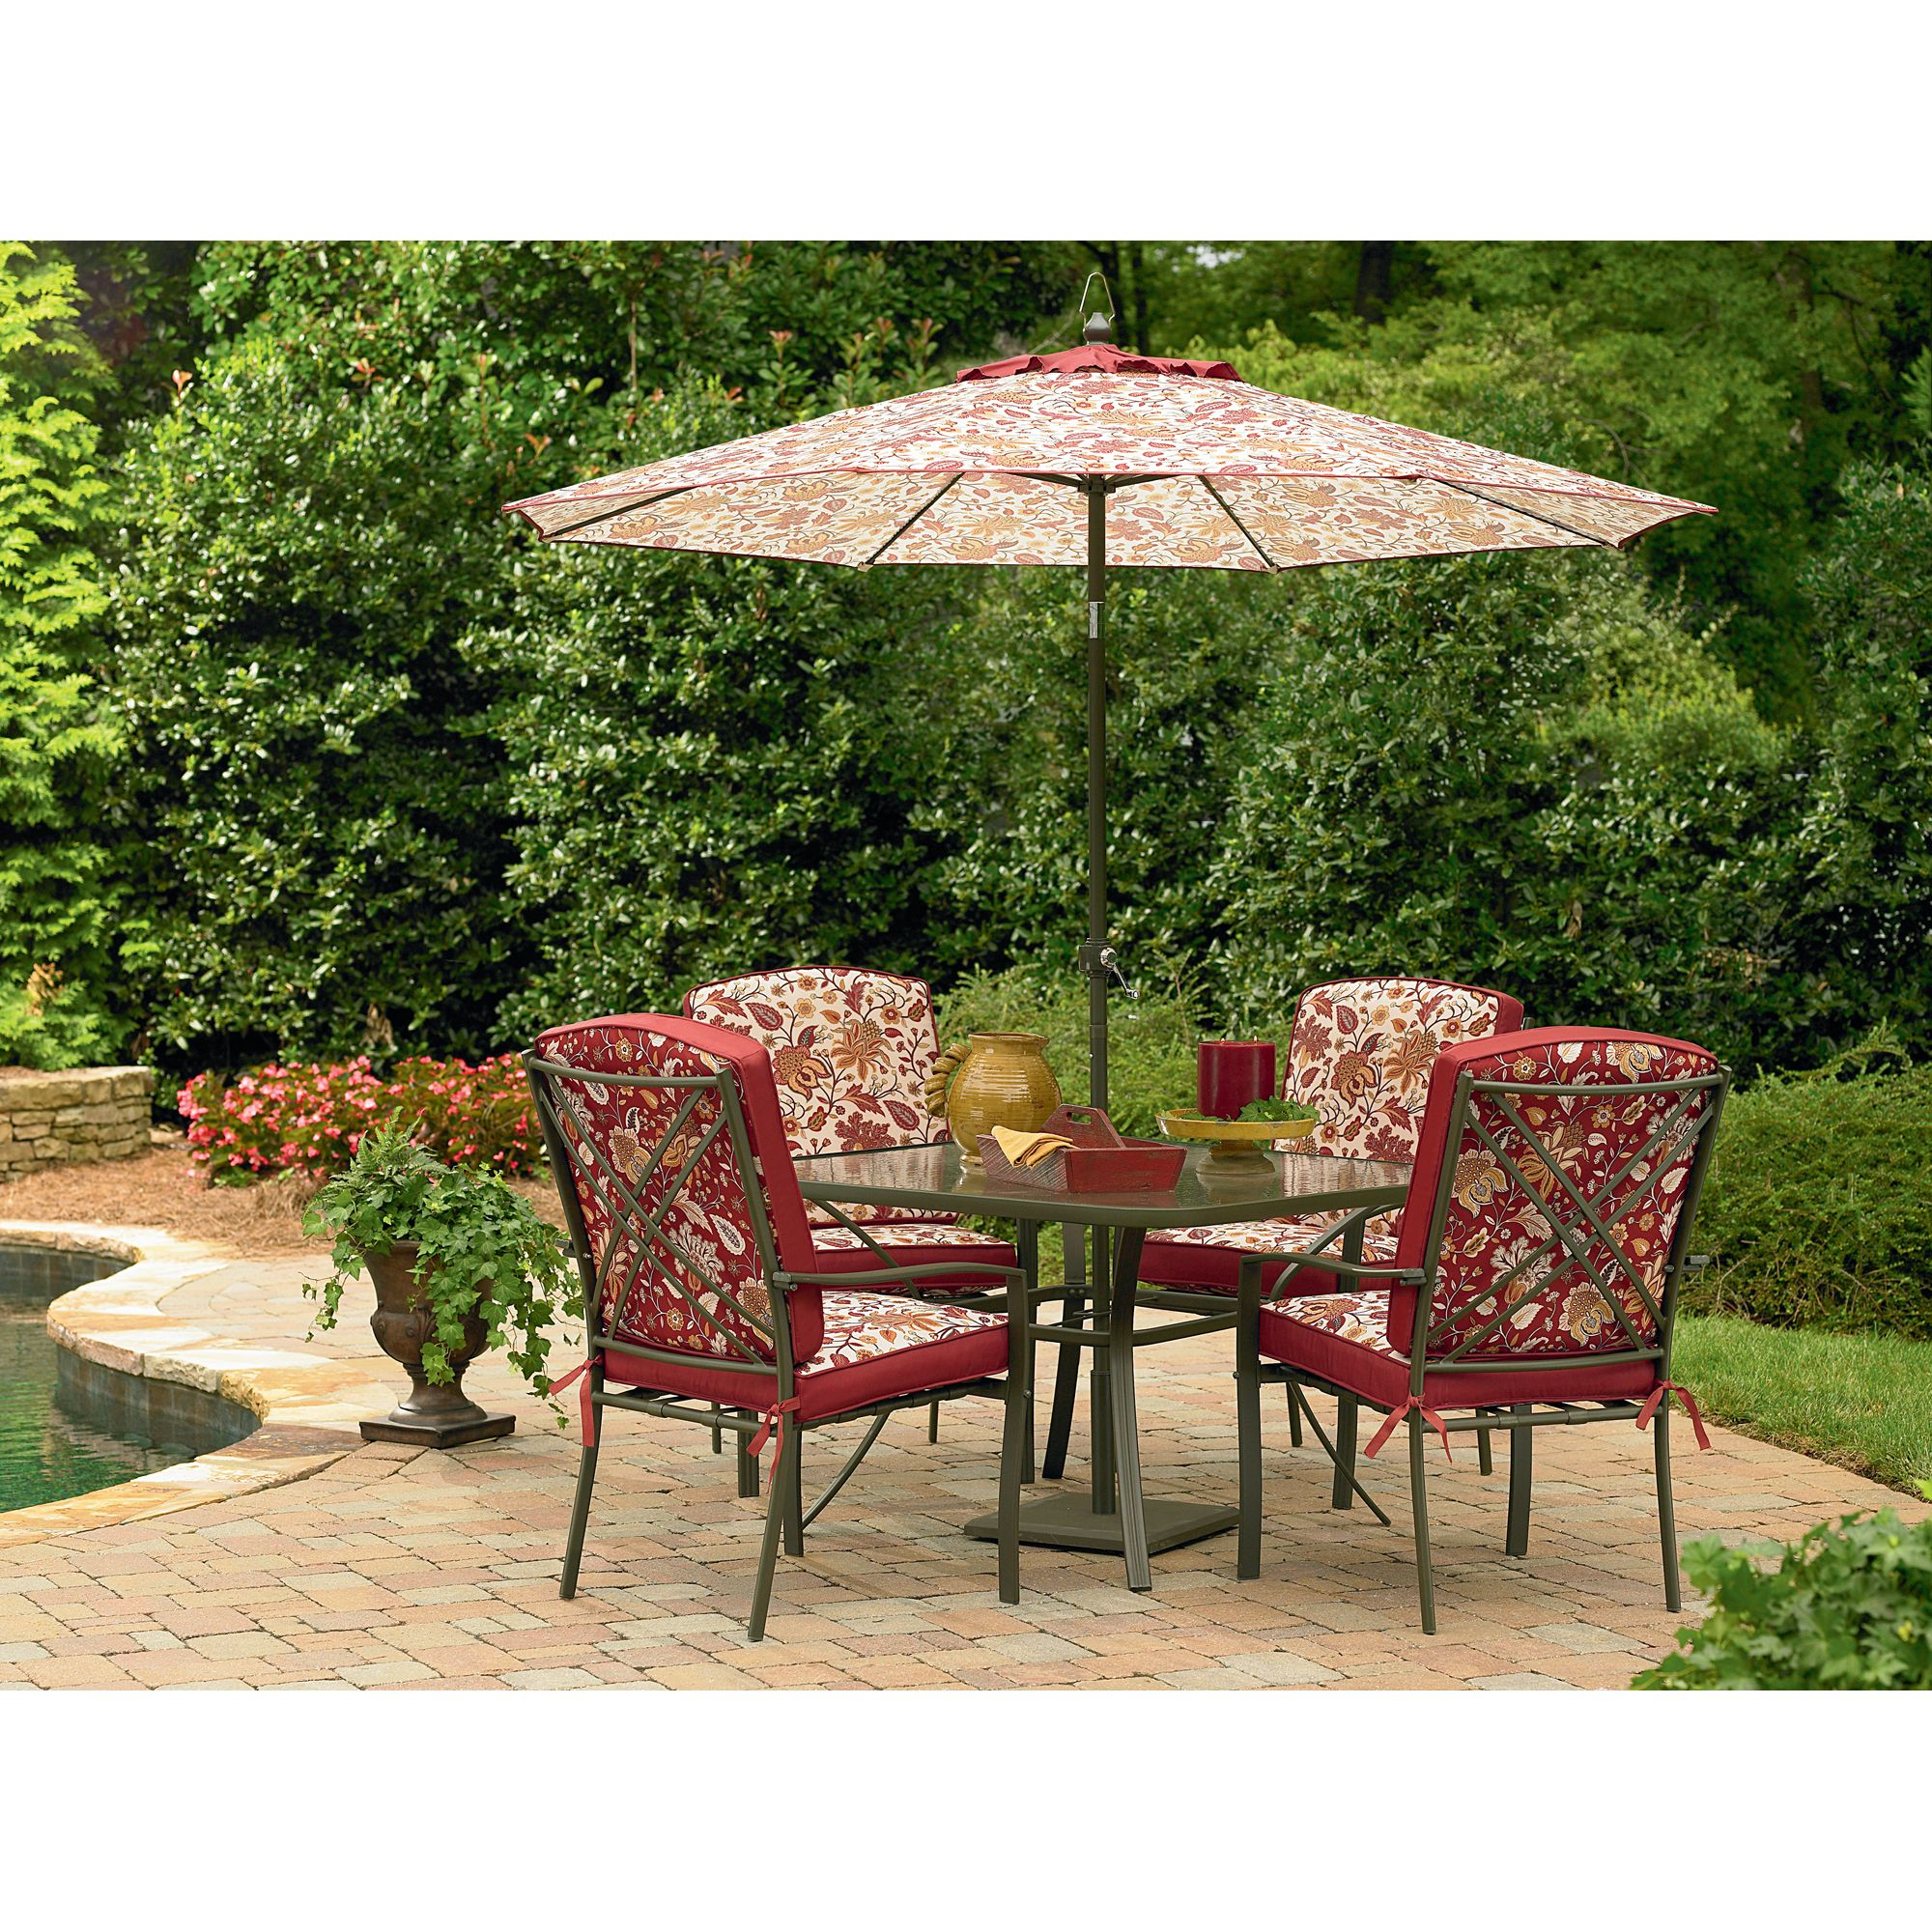 Sears Patio Chairs Essential Garden Laurelhurst 4 Cushion Patio Dining Chairs